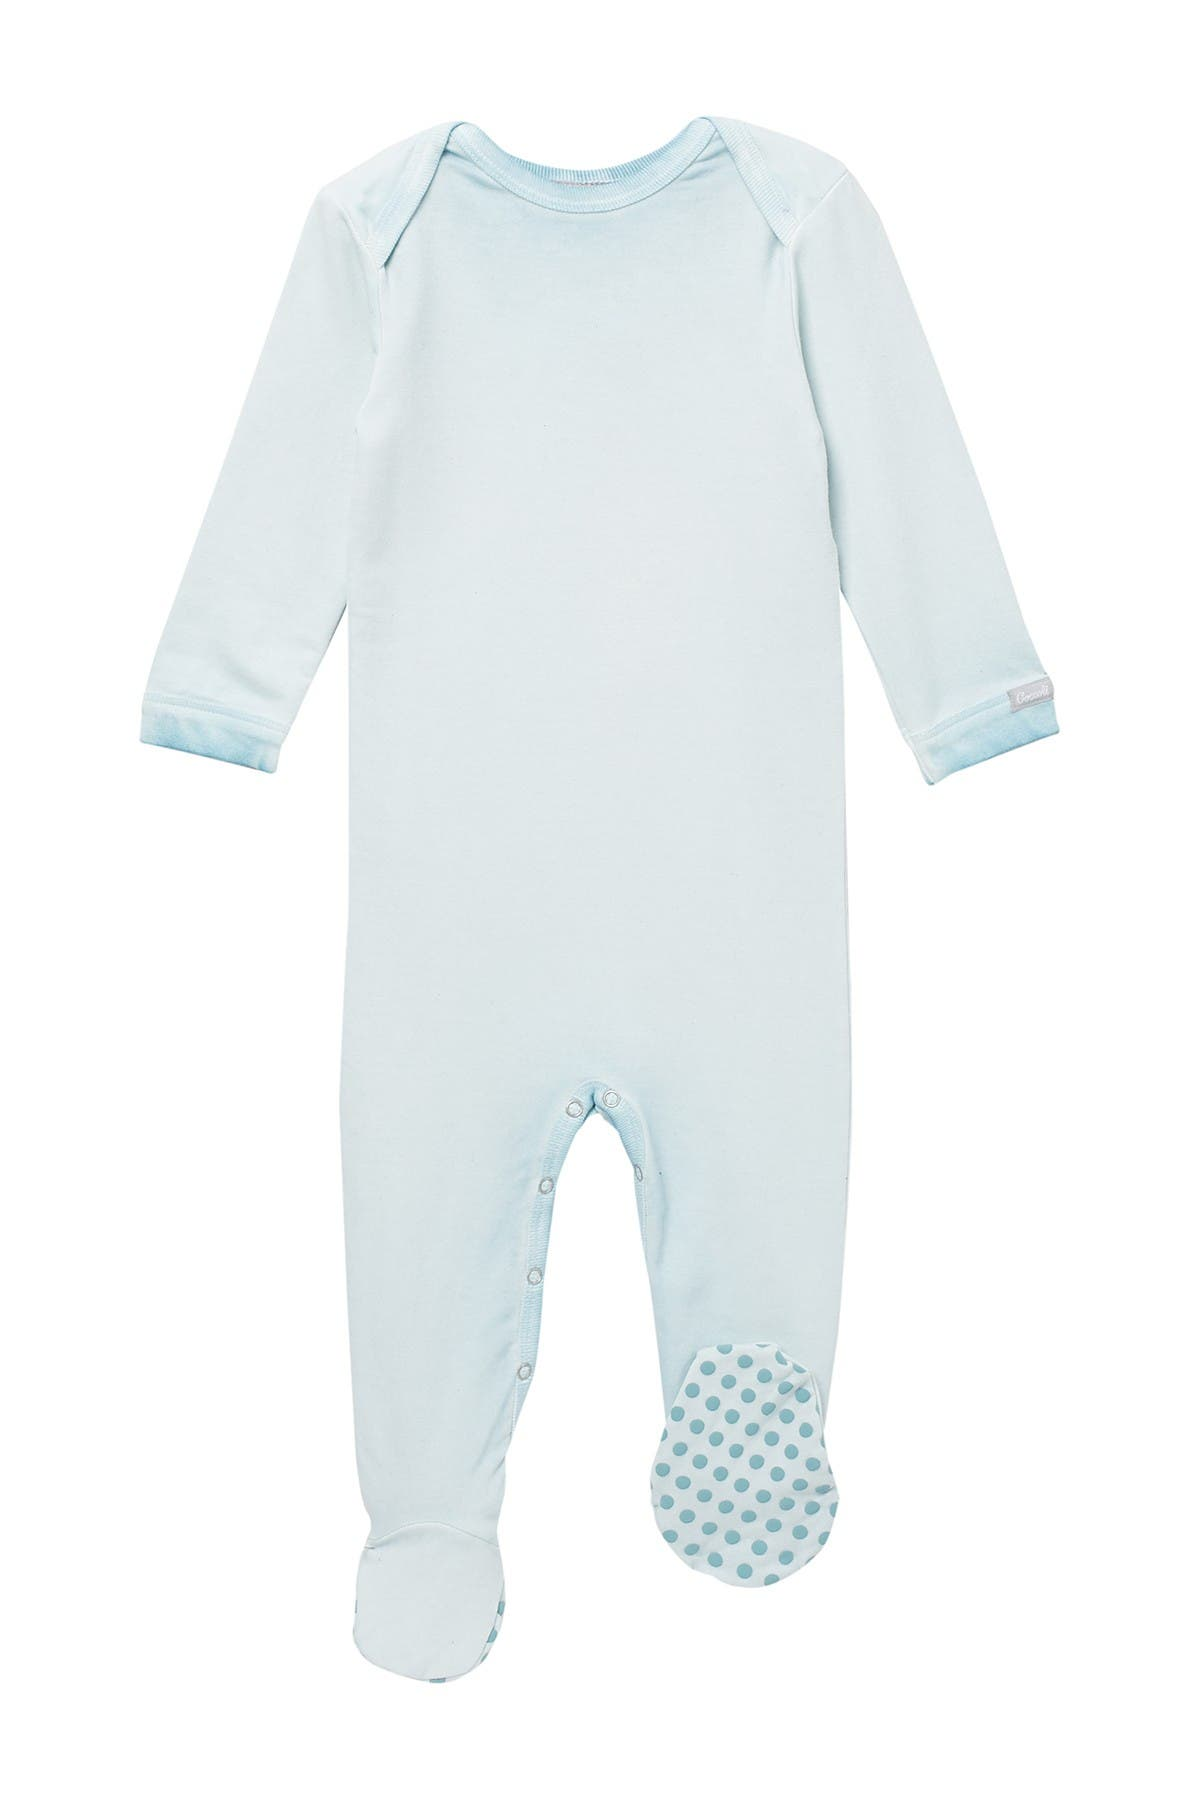 Image of Coccoli French Terry Footie Bodysuit